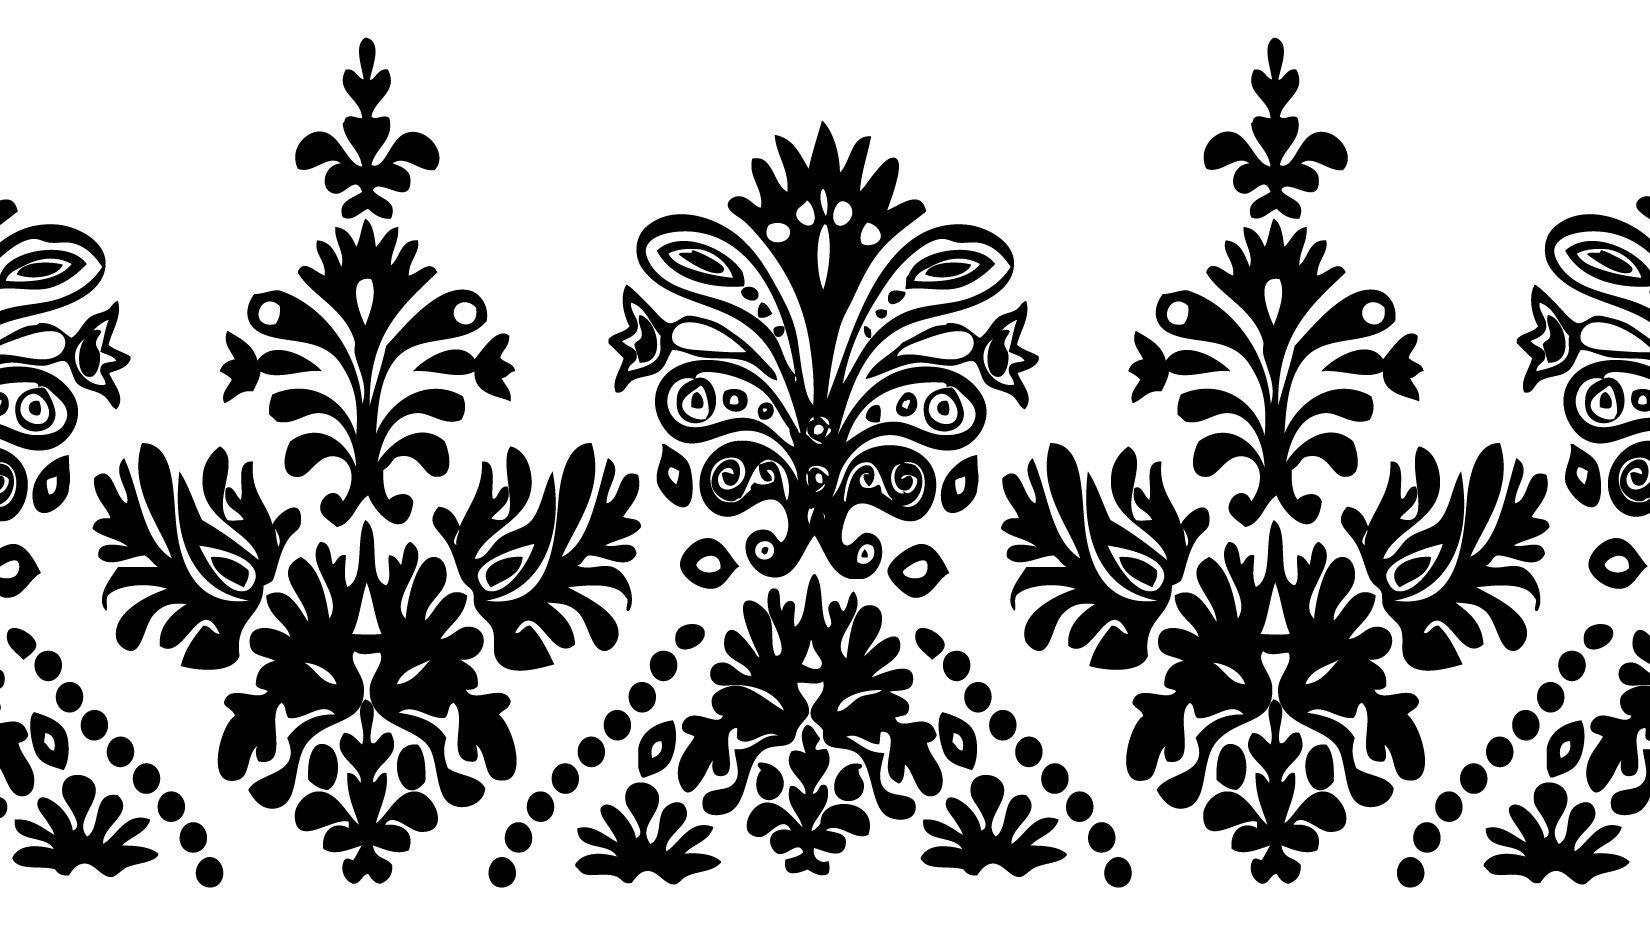 Free Printable Stencils For Painting | Stencils Designs Free - Free Printable Stencils